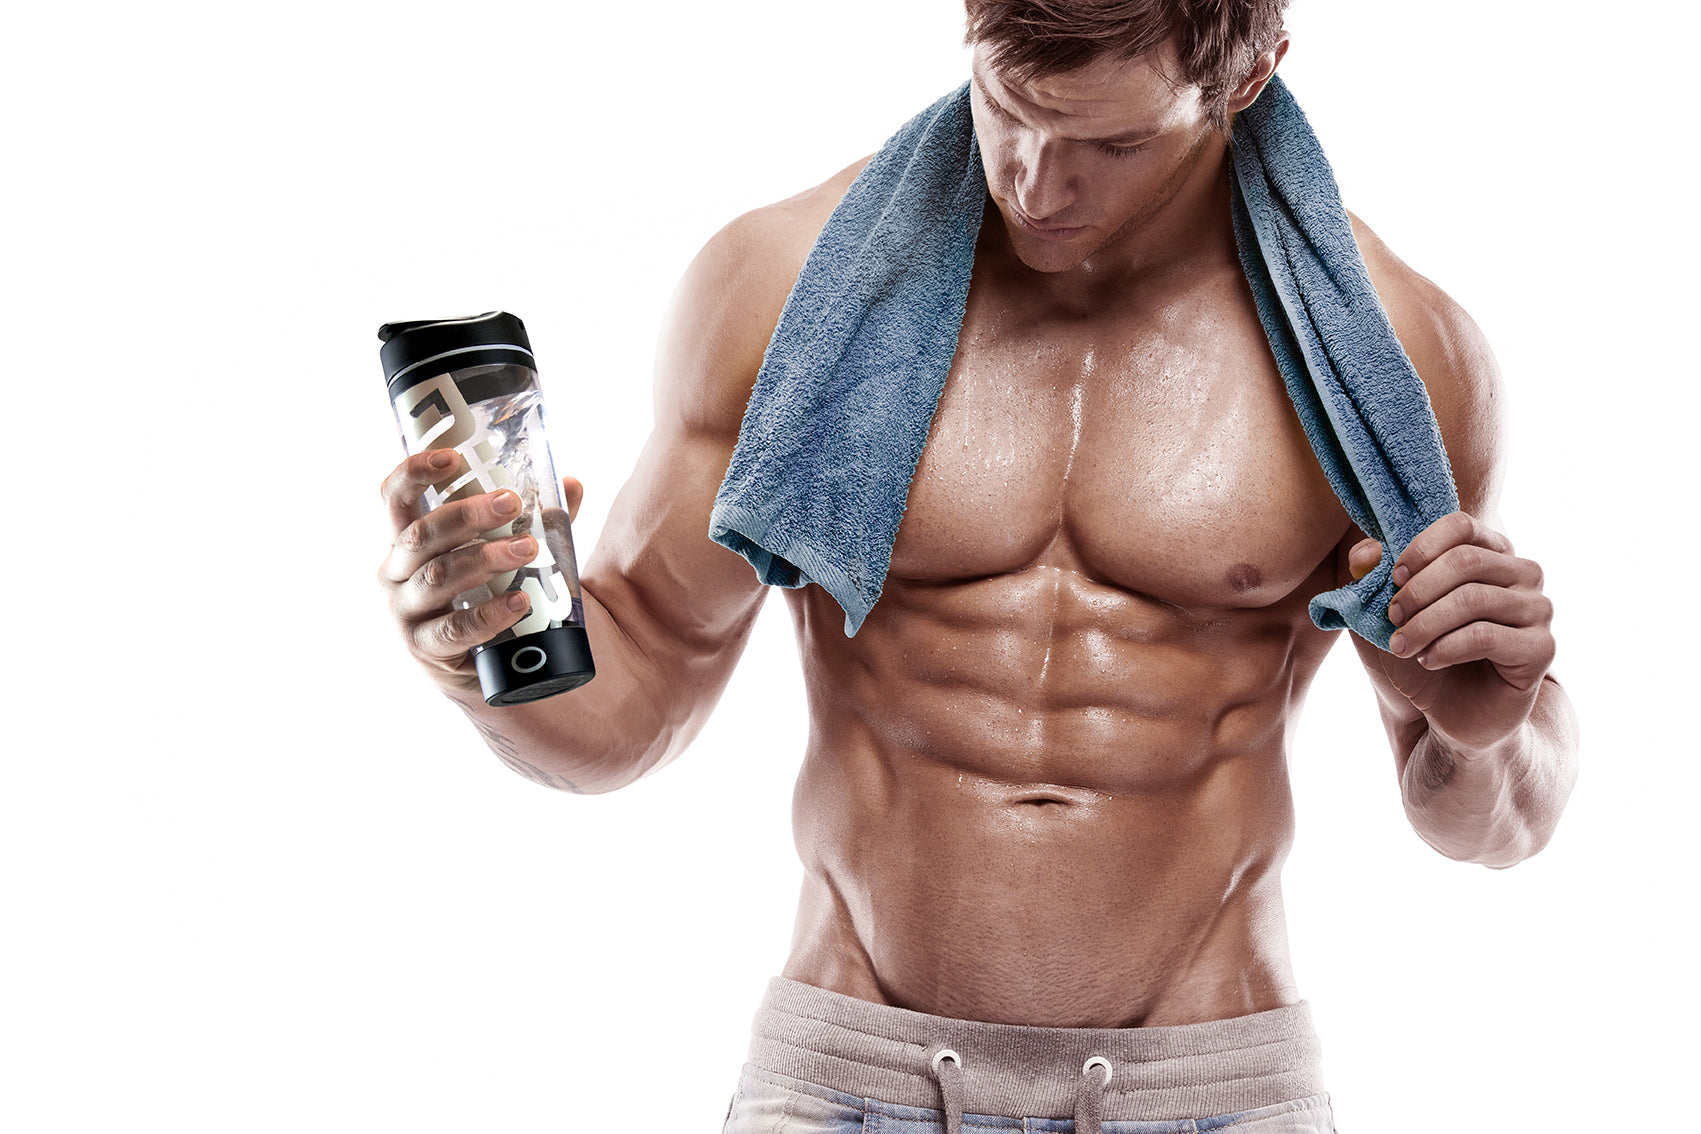 Top 3 Supplements For Building Mass